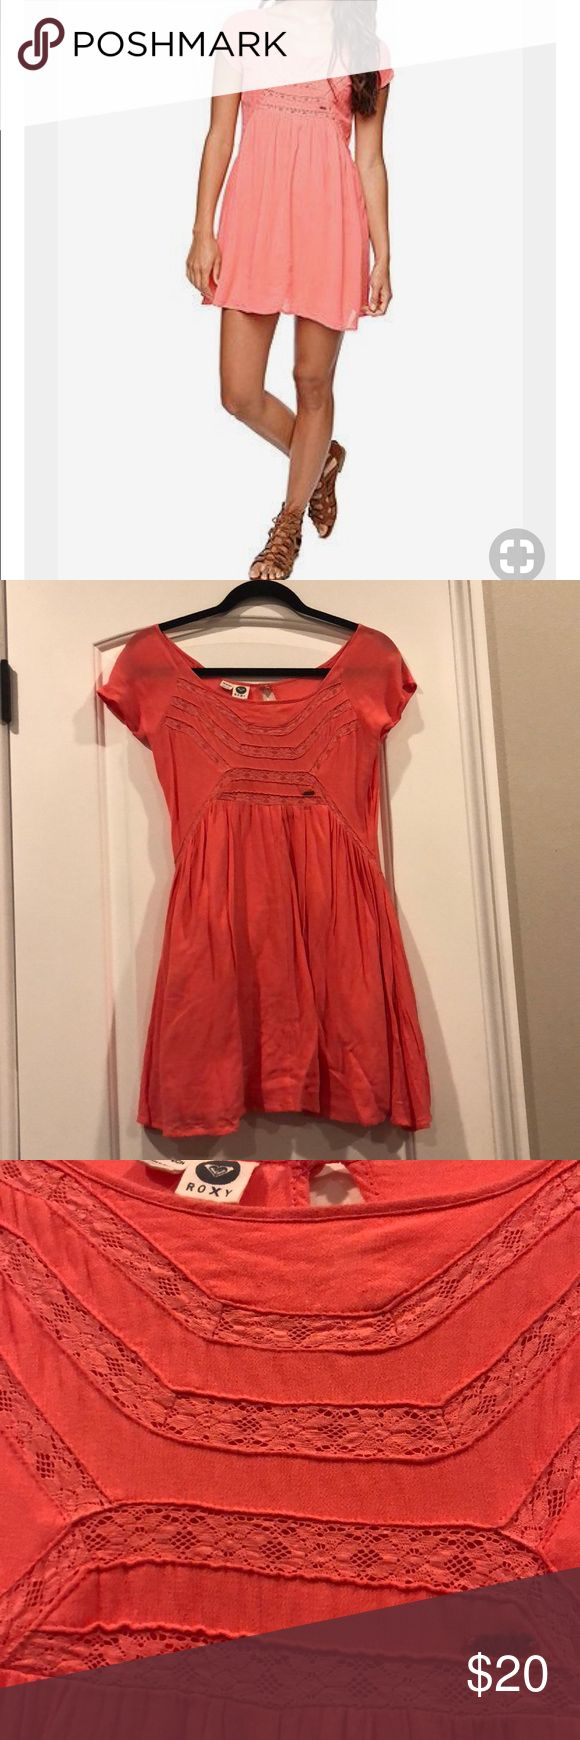 Roxy coral dress size xs Good used condition Roxy coral dress size xs. Pics look orange, but it's actually more coral! Dress has pockets and is very comfortable and cute. Little stain from foundation on the front side under the logo (shown in pics) also a little threading coming undone on the left side of the dress (also shown in pics) overall really cute and one of my favorite dresses! Too bad I can't fit anymore. Send me an offer! Roxy Dresses Mini